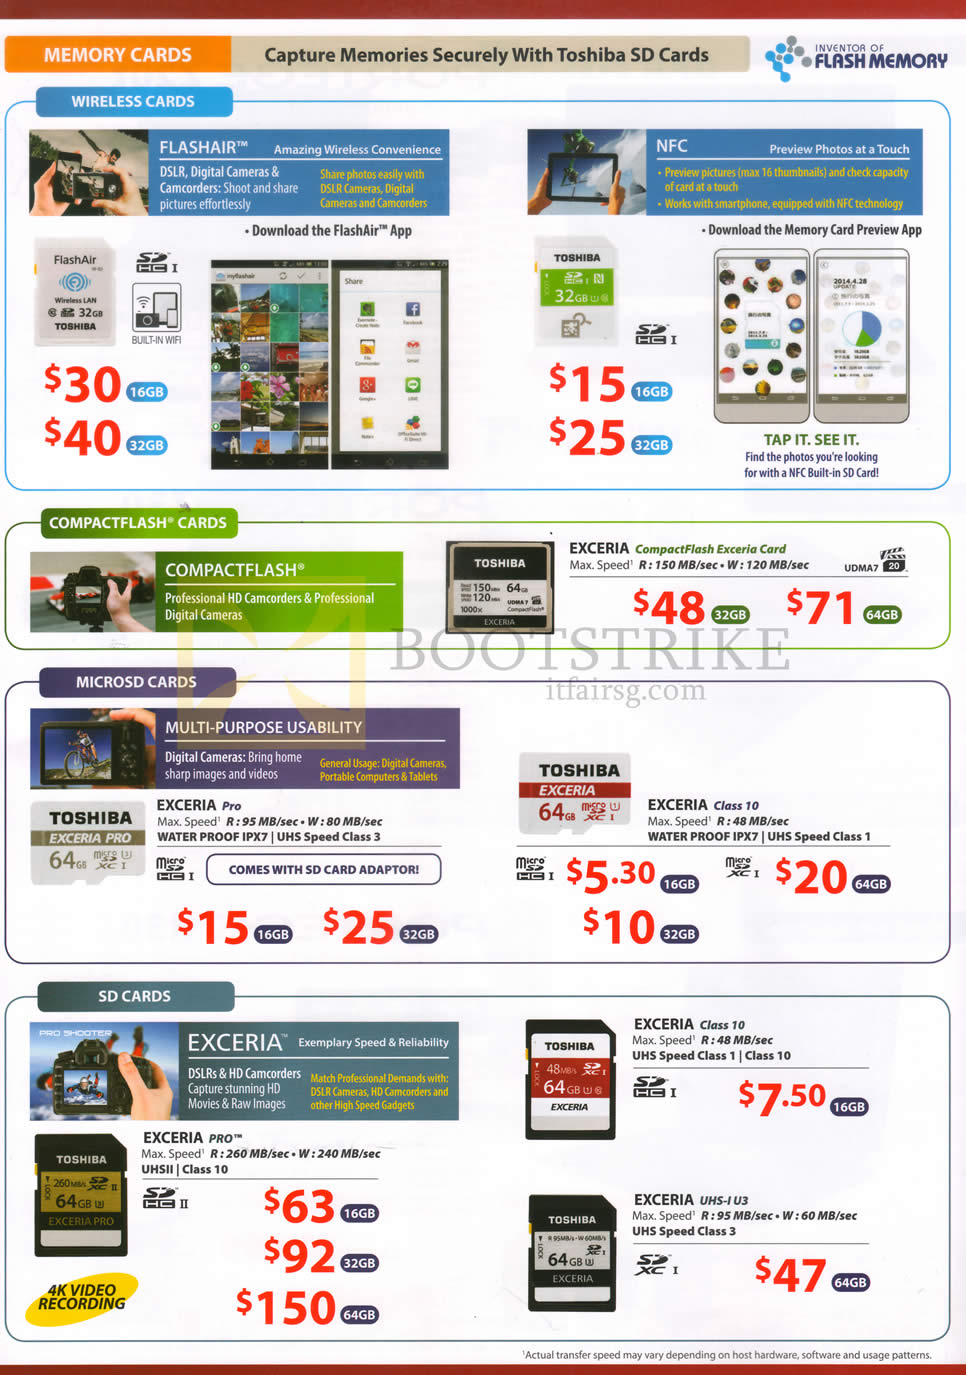 PC SHOW 2016 price list image brochure of Toshiba Wireless Cards, Compactflash Cards, MicroSD Cards, SD Cards FlashAir, NFC, Exceria, Exceria Pro